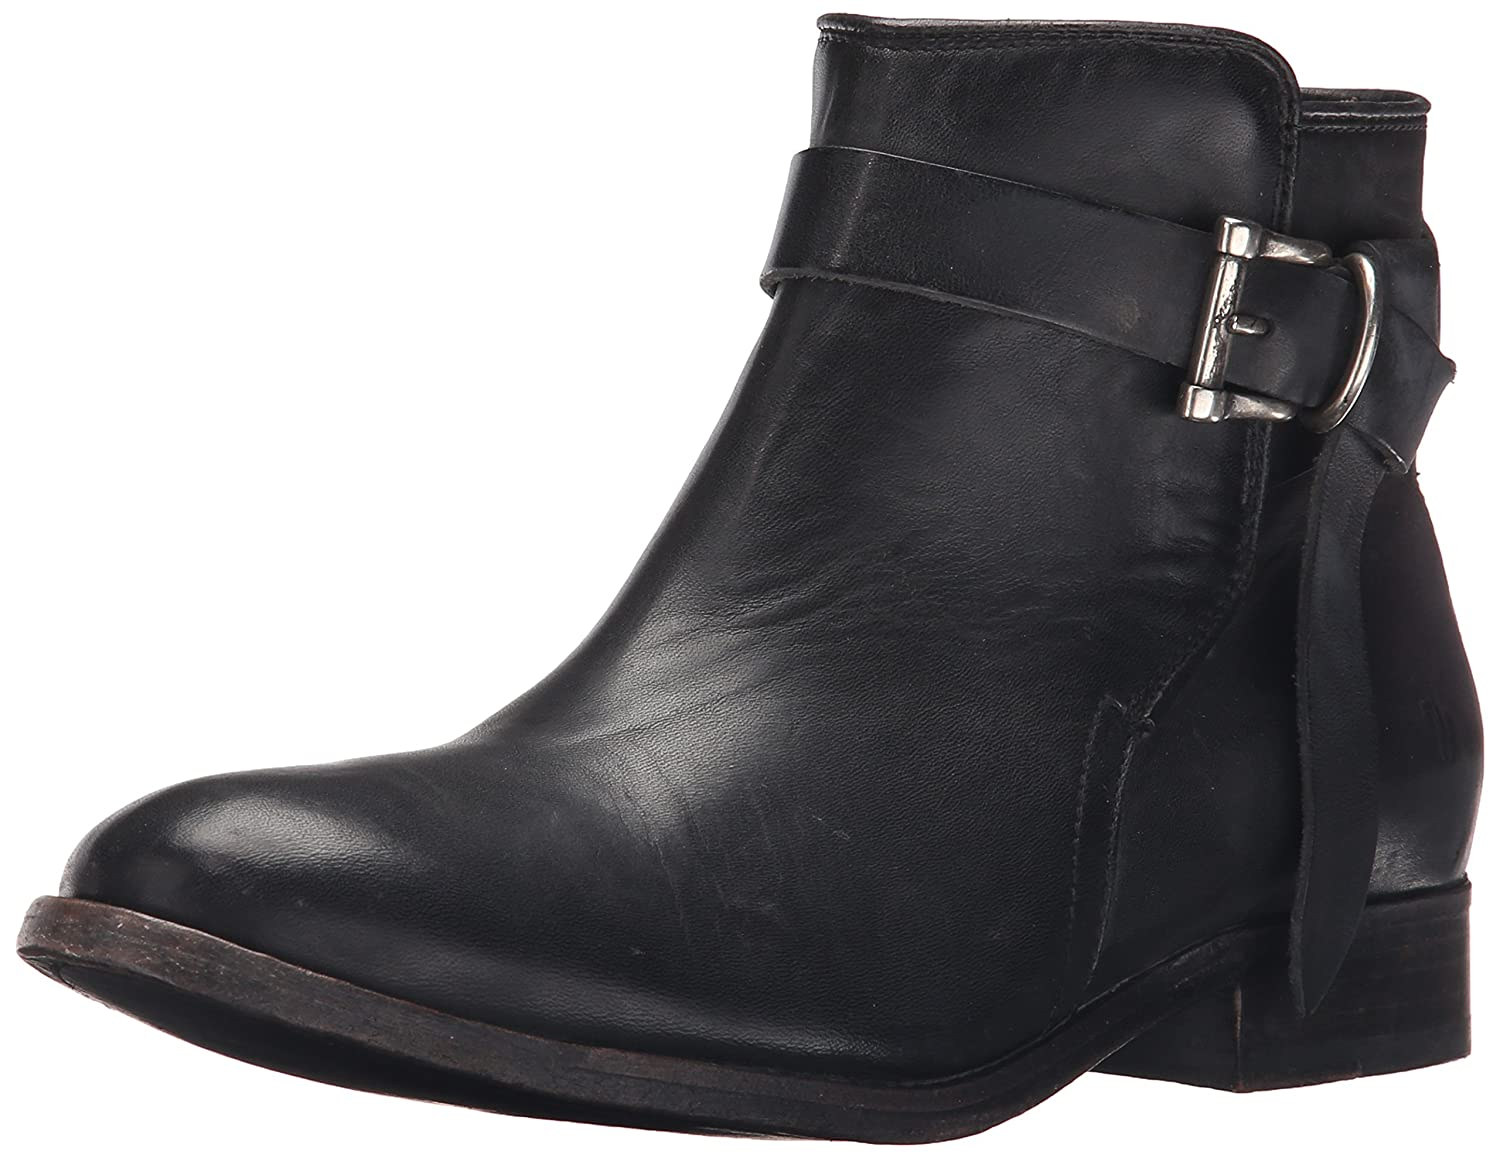 FRYE Women's Melissa Knotted Short Boot